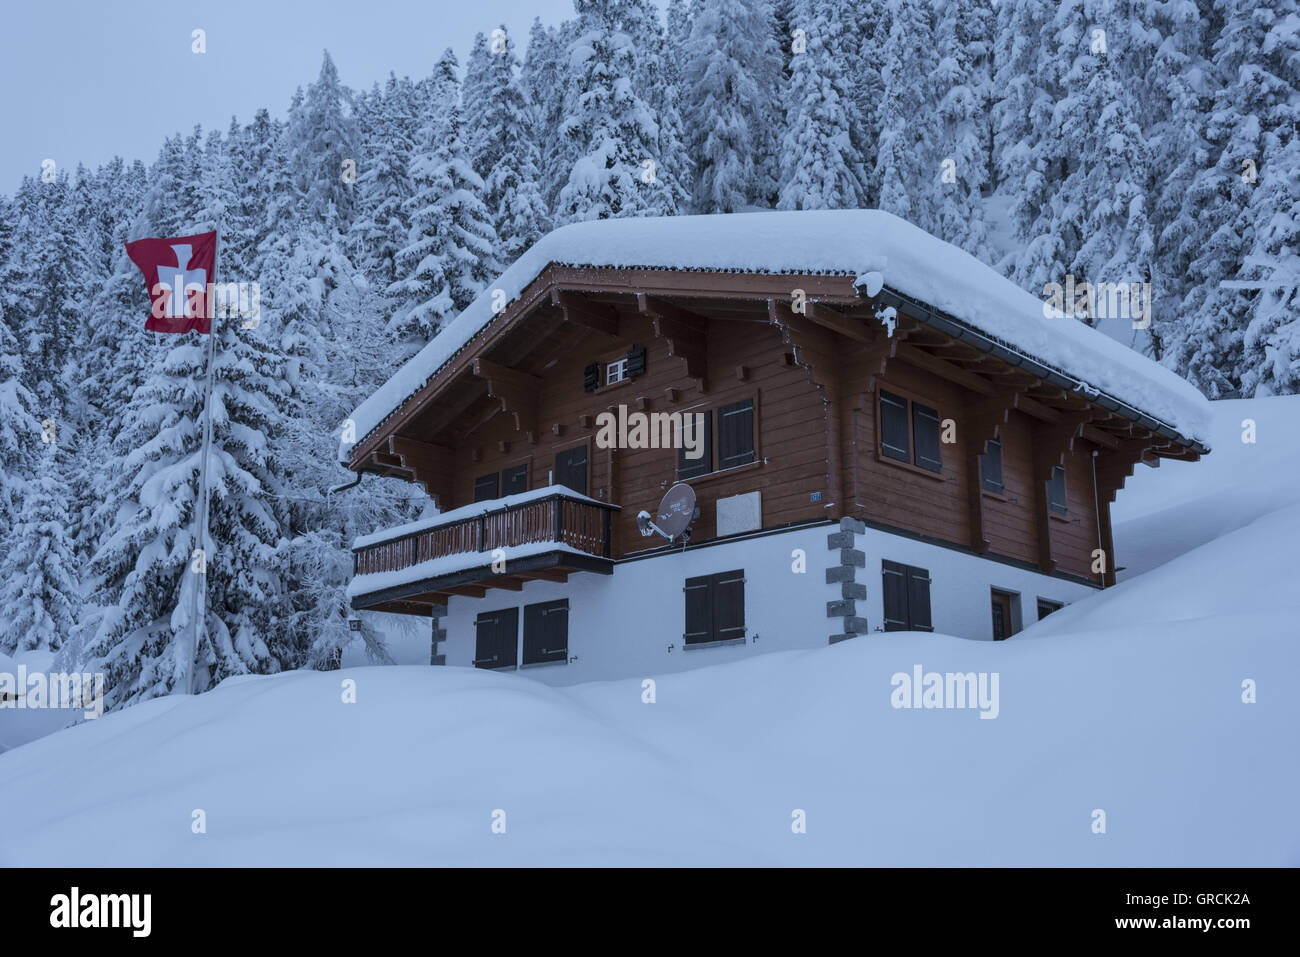 Swiss Chalet In Front Of Deeply Snow Covered Fir Forest With Flag Waving The